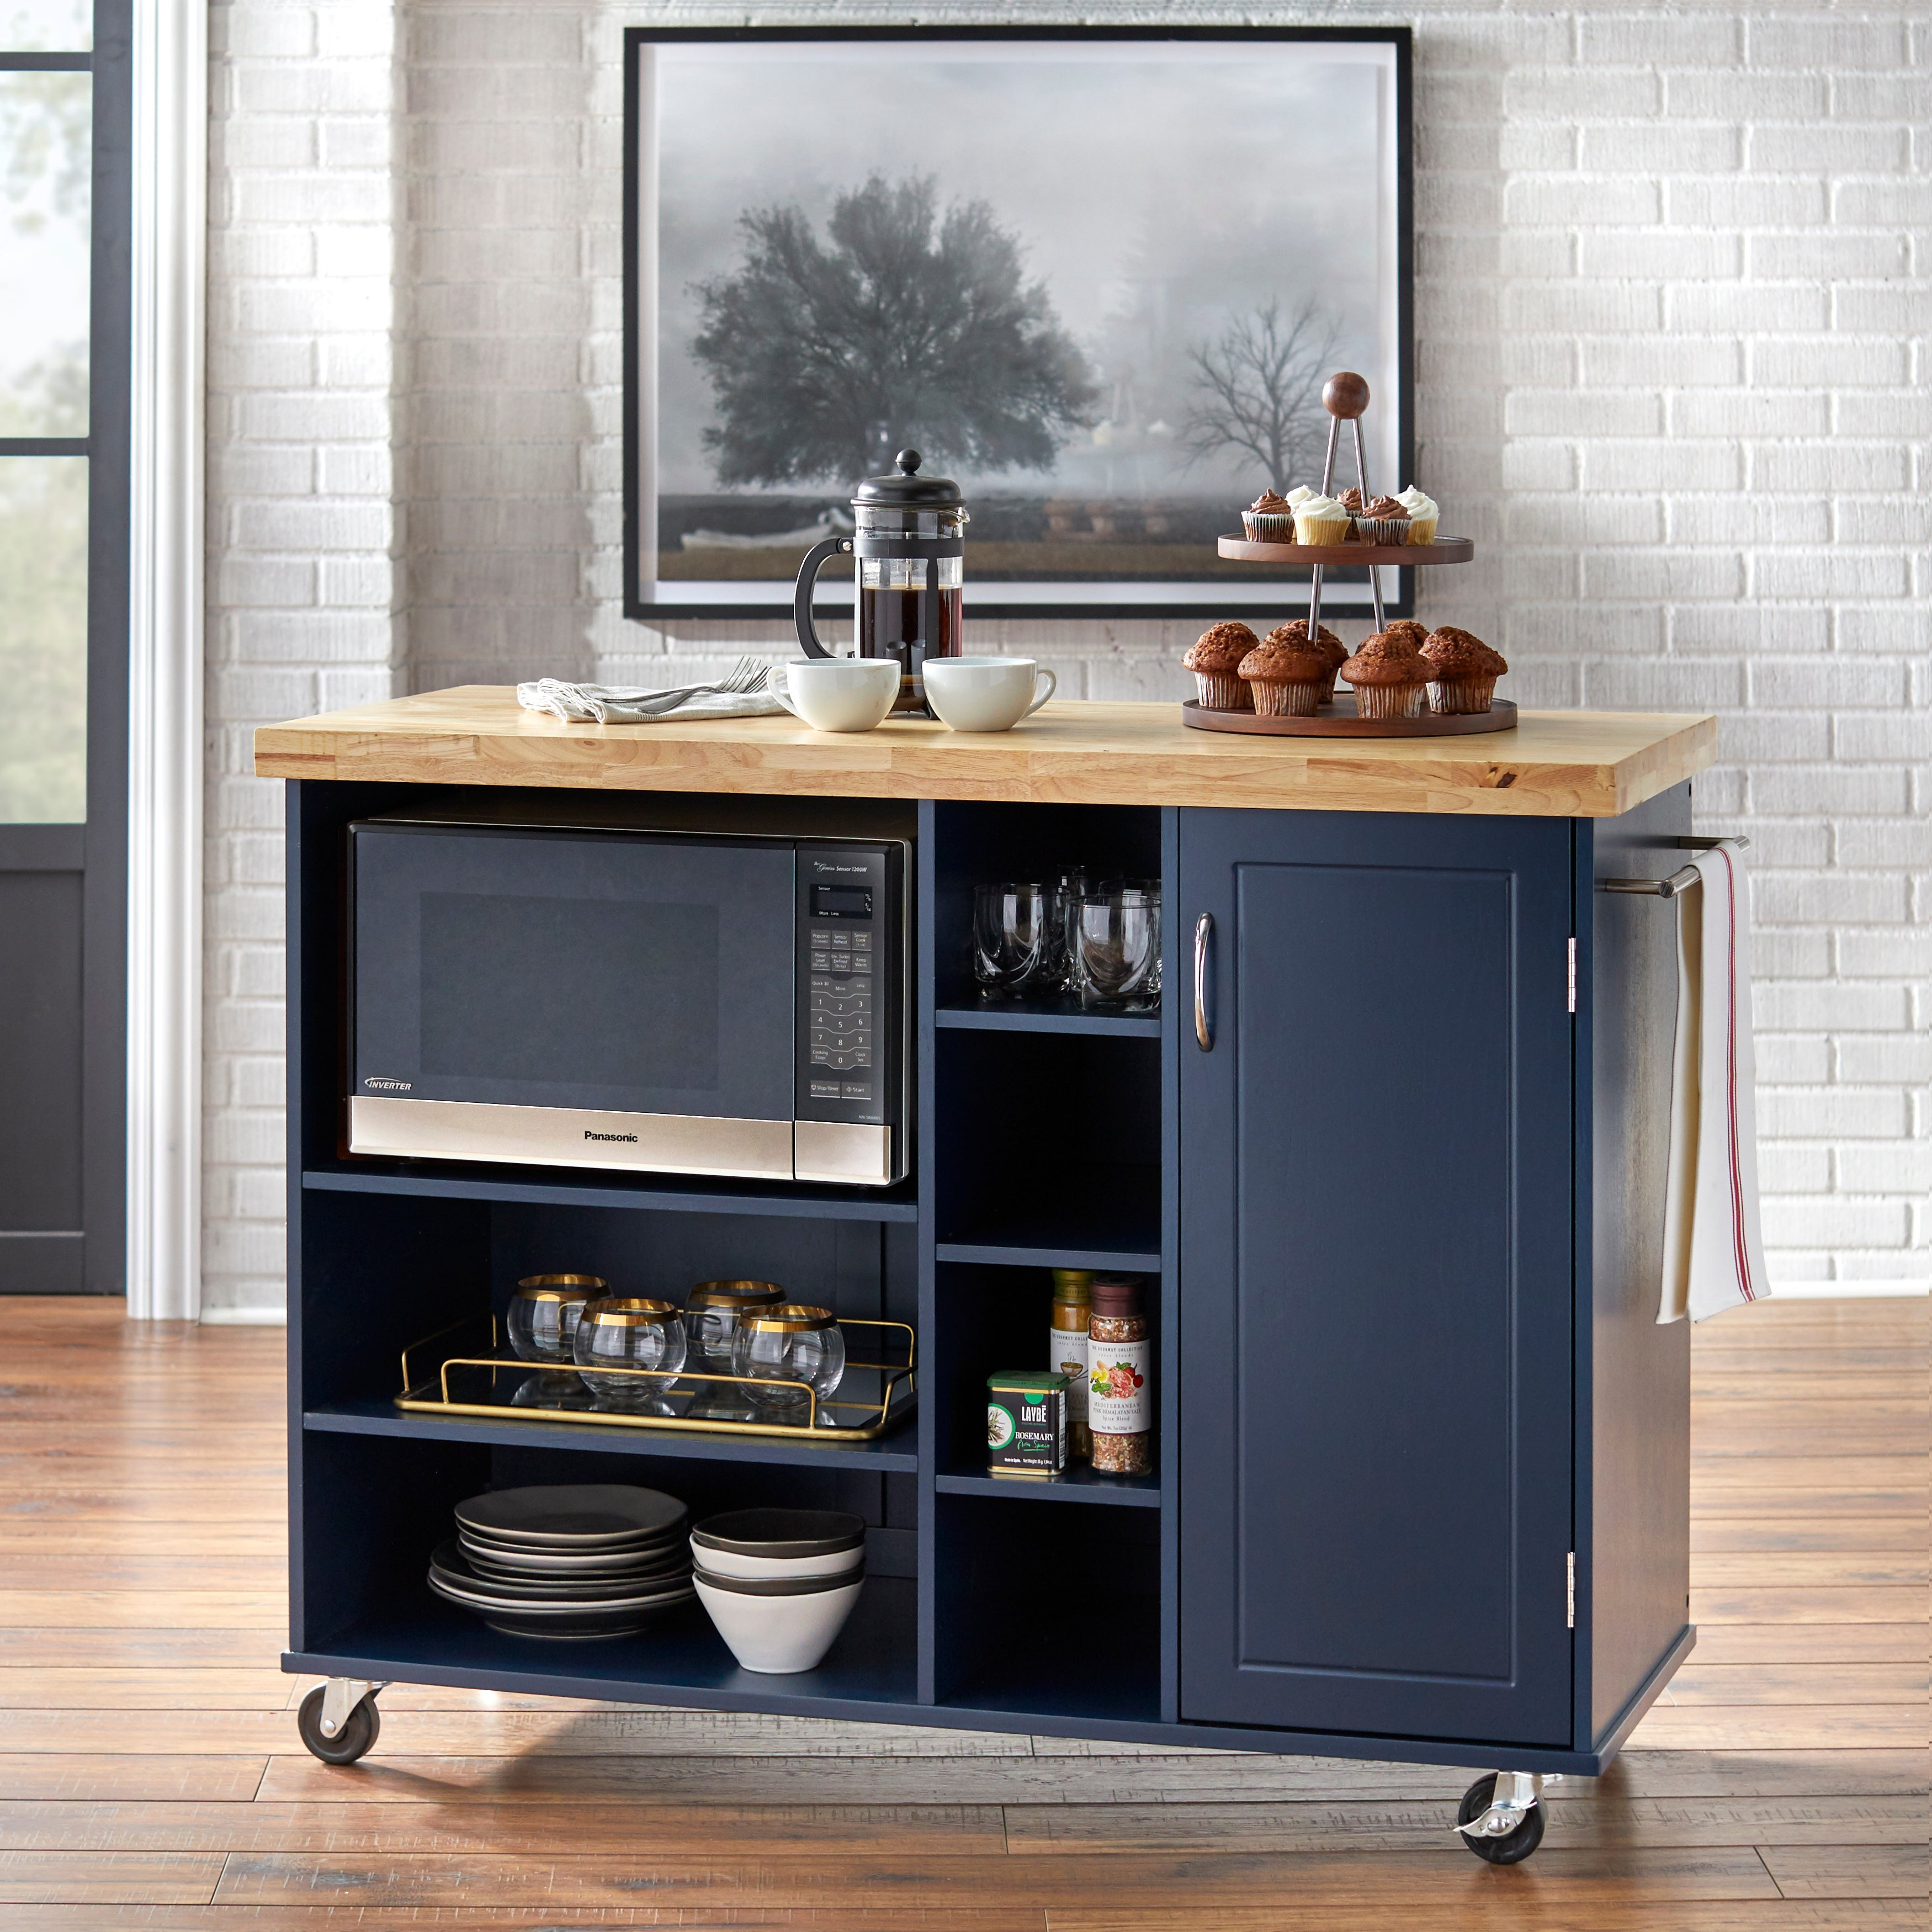 Shop Black Friday Deals On Simple Living Rolling Galvin Microwave Storage Cart On Sale Overstock 18848623